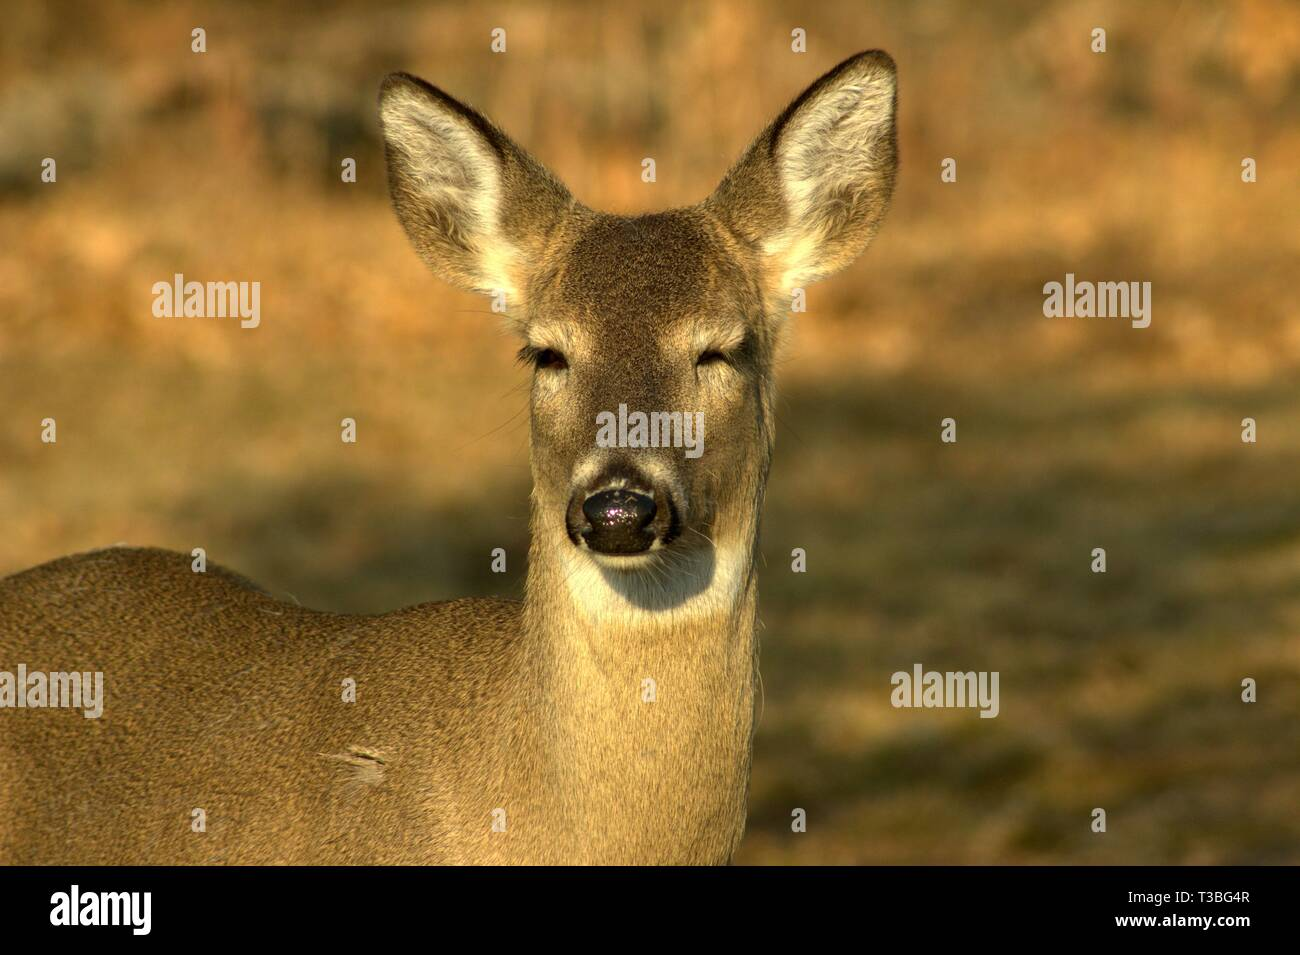 a doe with closed eyes enjoying the warmth of the sun T3BG4R